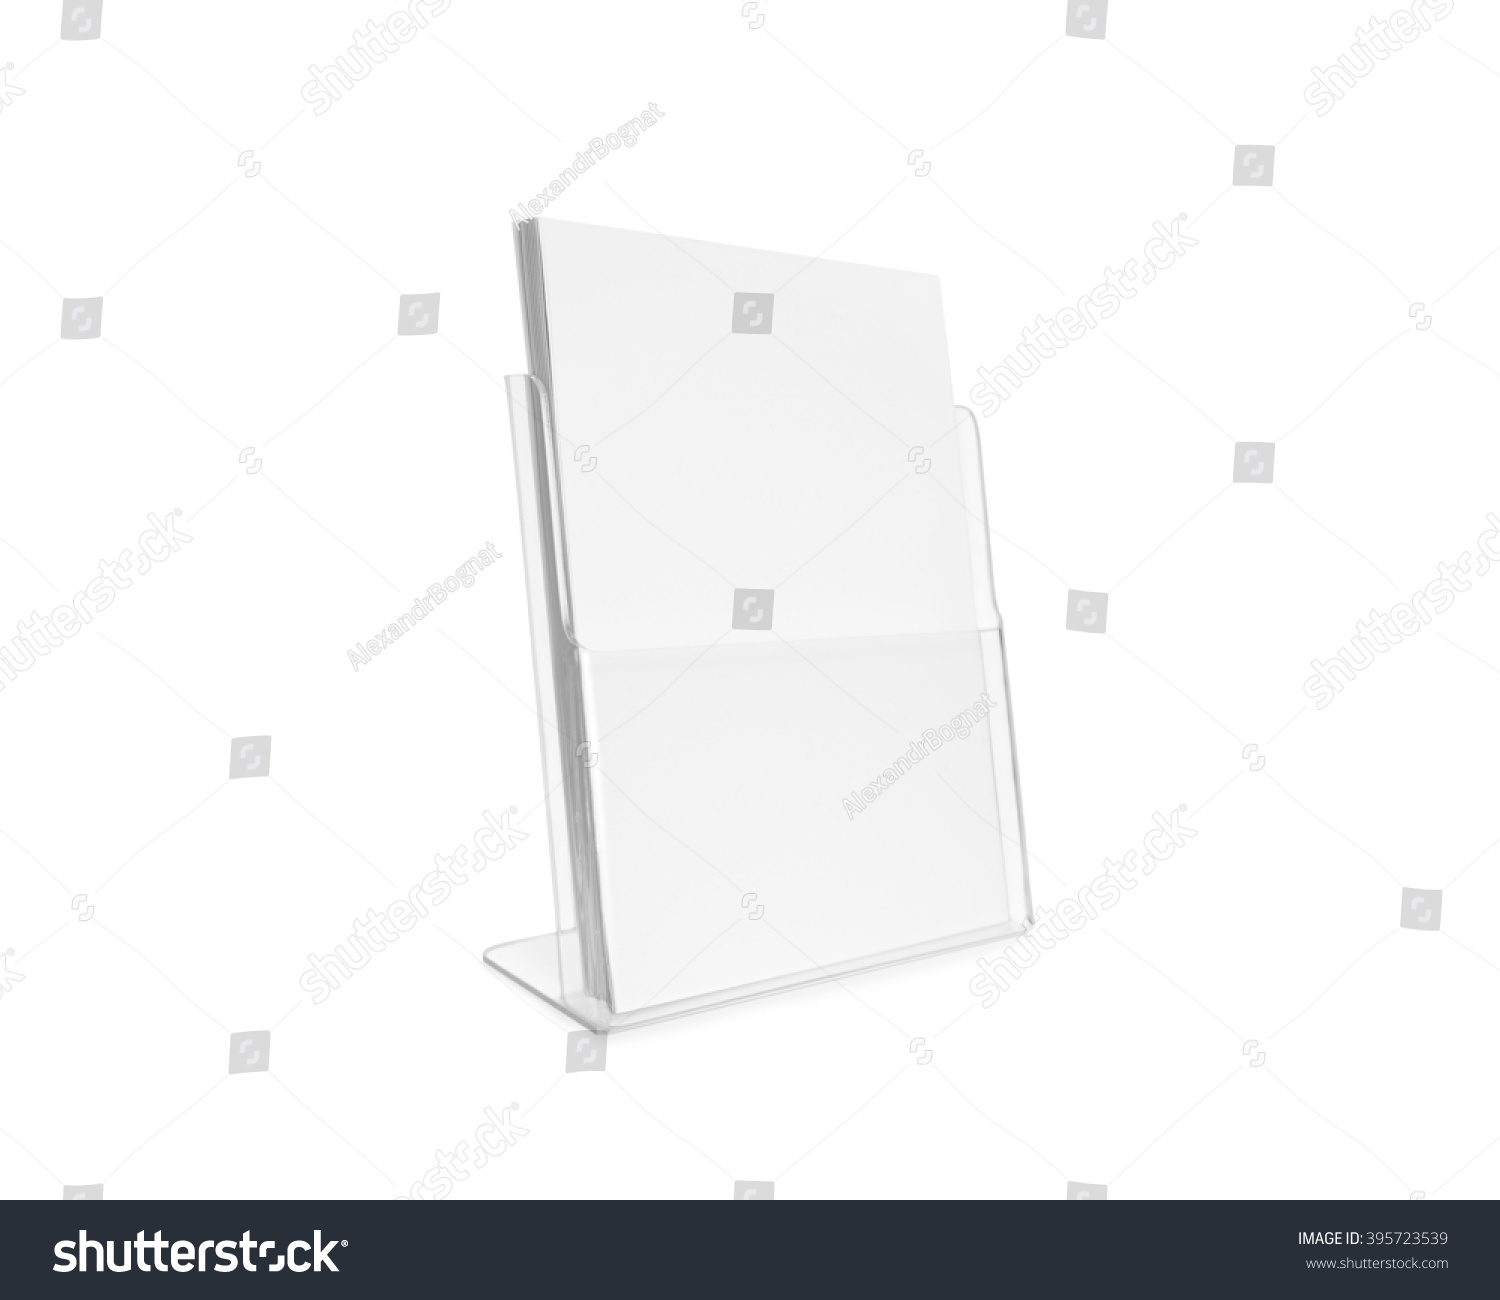 blank flyer mockup glass plastic transparent holder isolated plain flier stand clear brochure holding